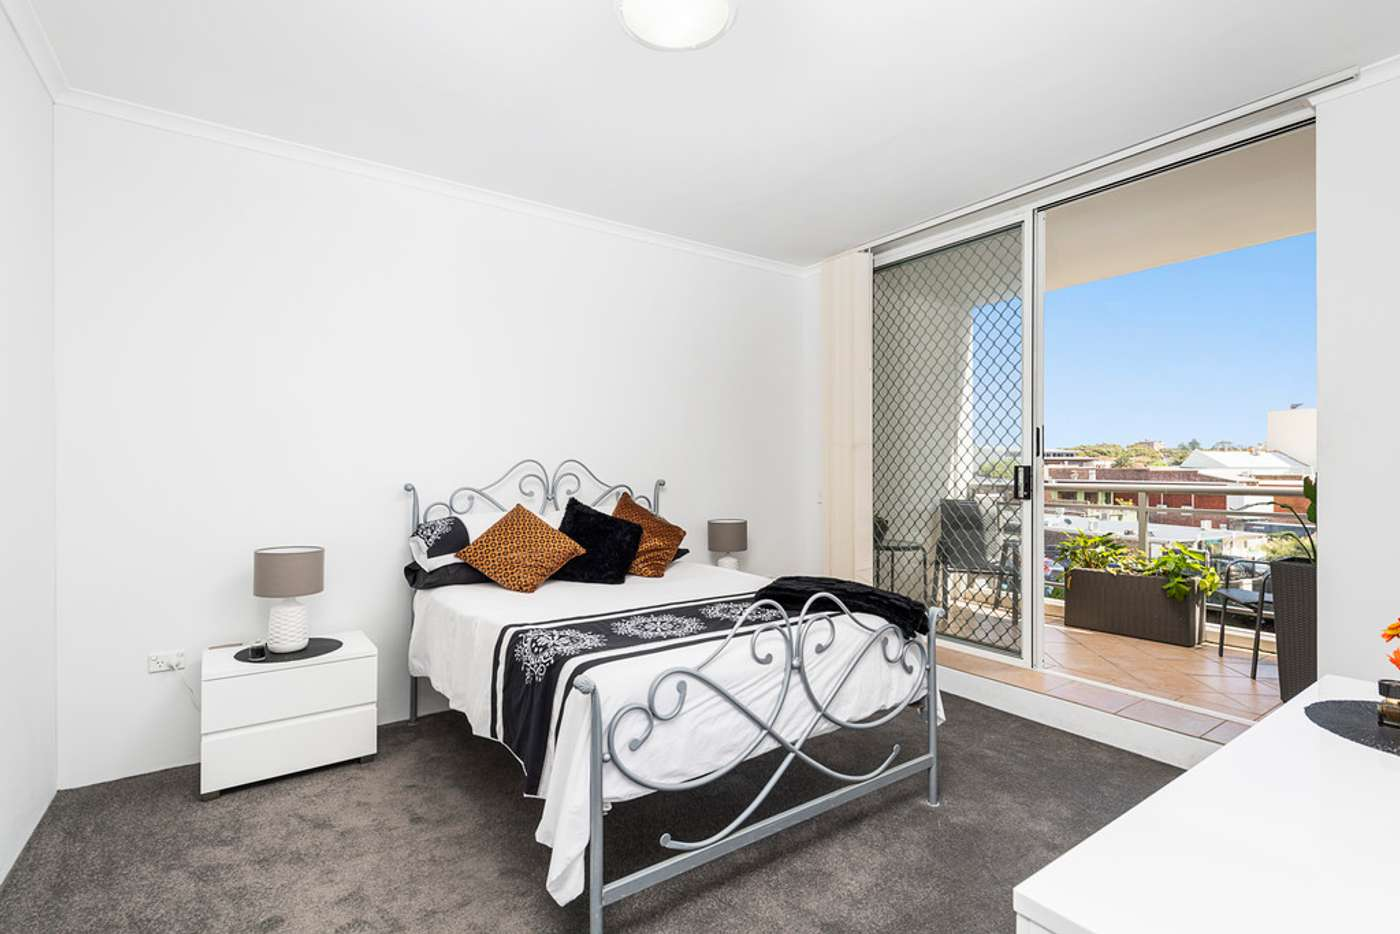 Sixth view of Homely unit listing, 10/1 Ocean Grove, Cronulla NSW 2230